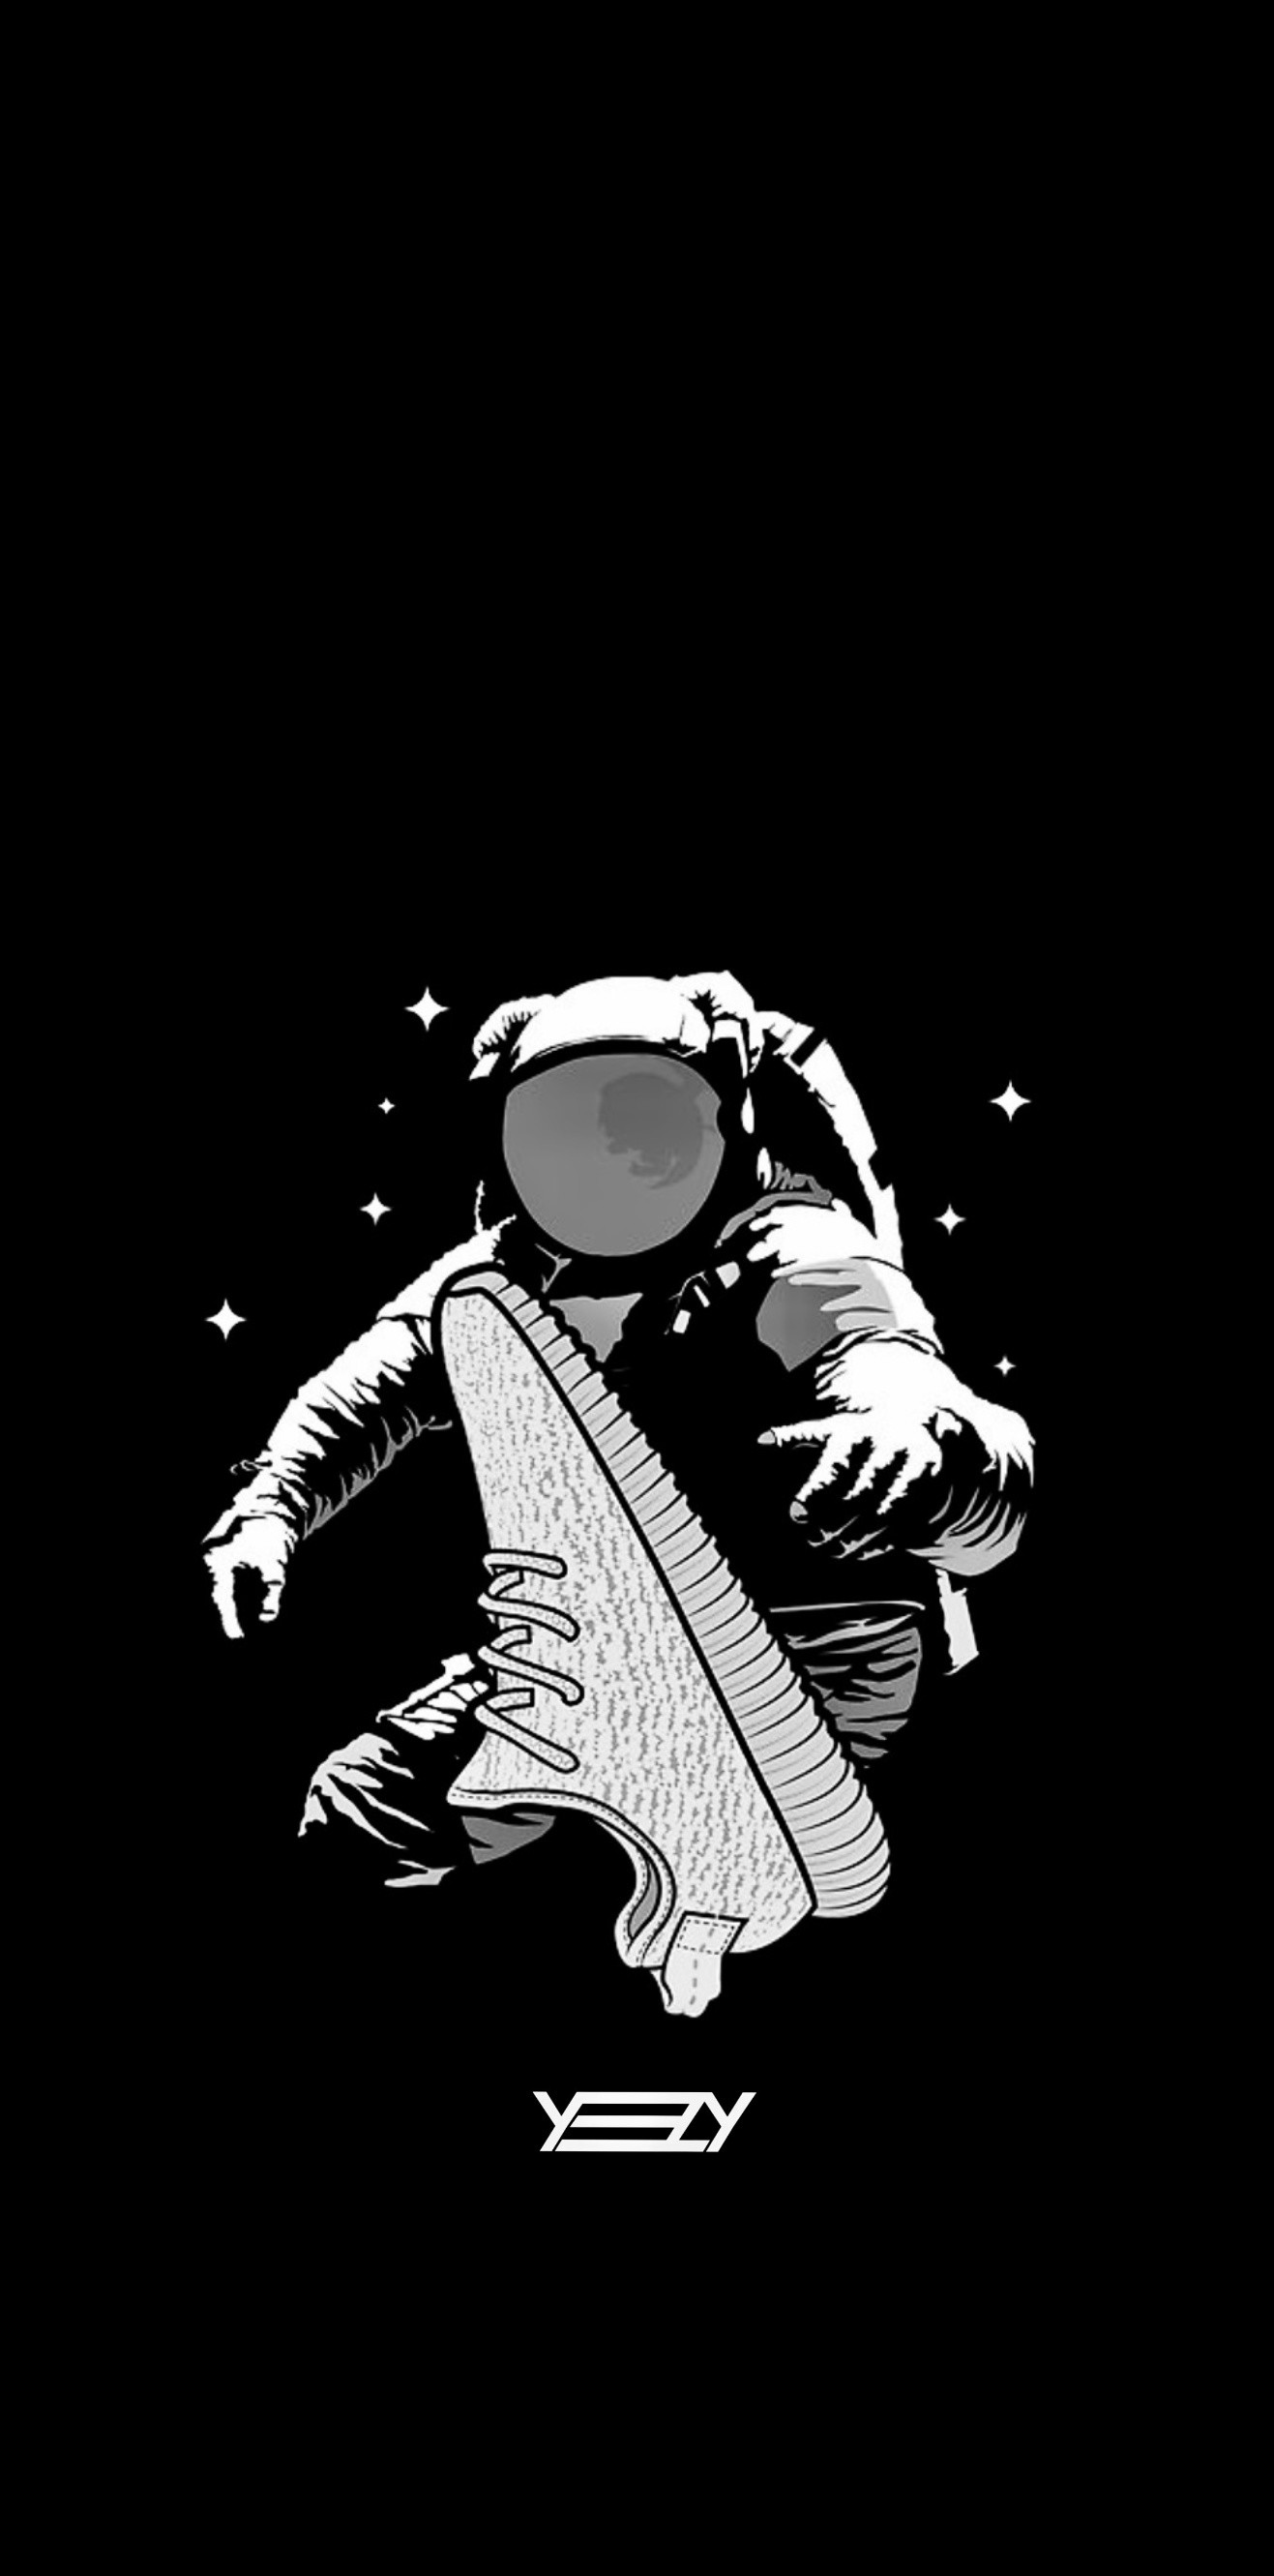 1317x2662 Yeezy Moonrock. Yeezus WallpaperBape ...